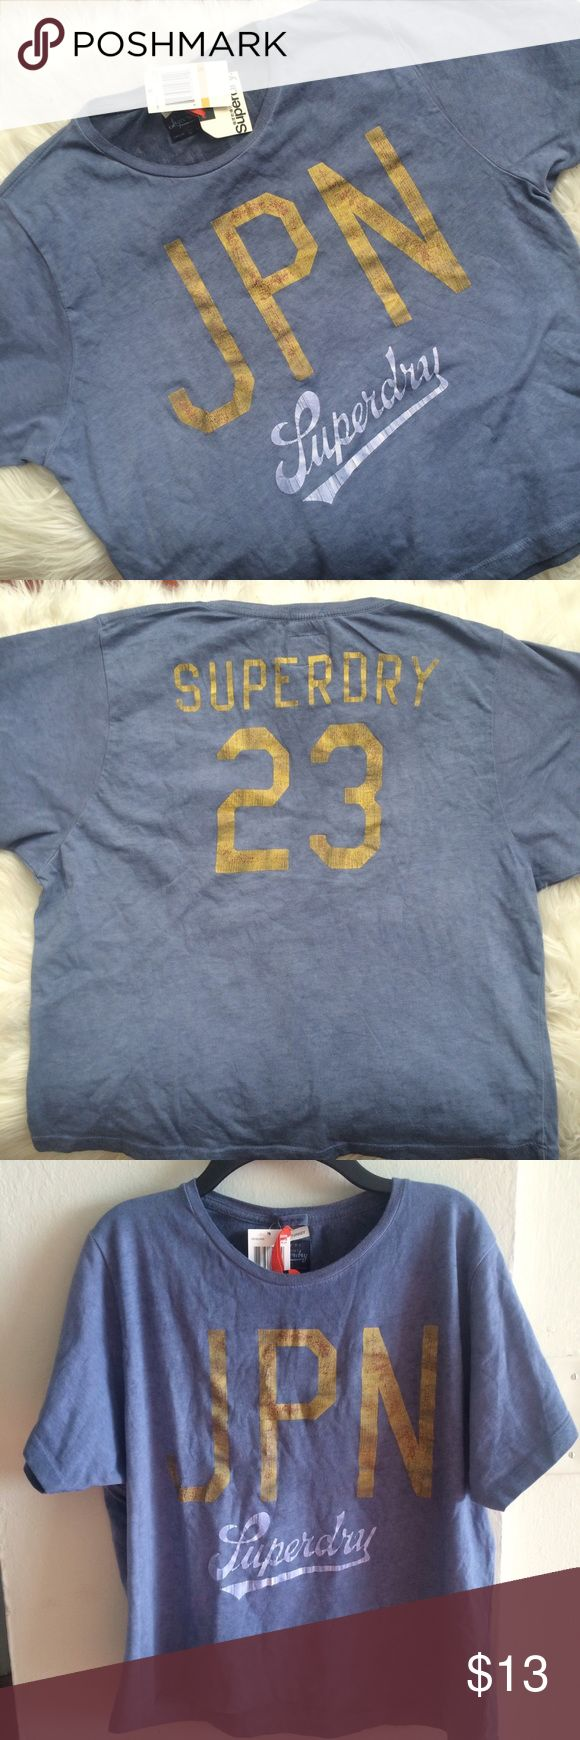 Superdry Boxy Tee Faded texture, boxy t-shirt shape. Never worn, with tags! Superdry Tops Tees - Short Sleeve